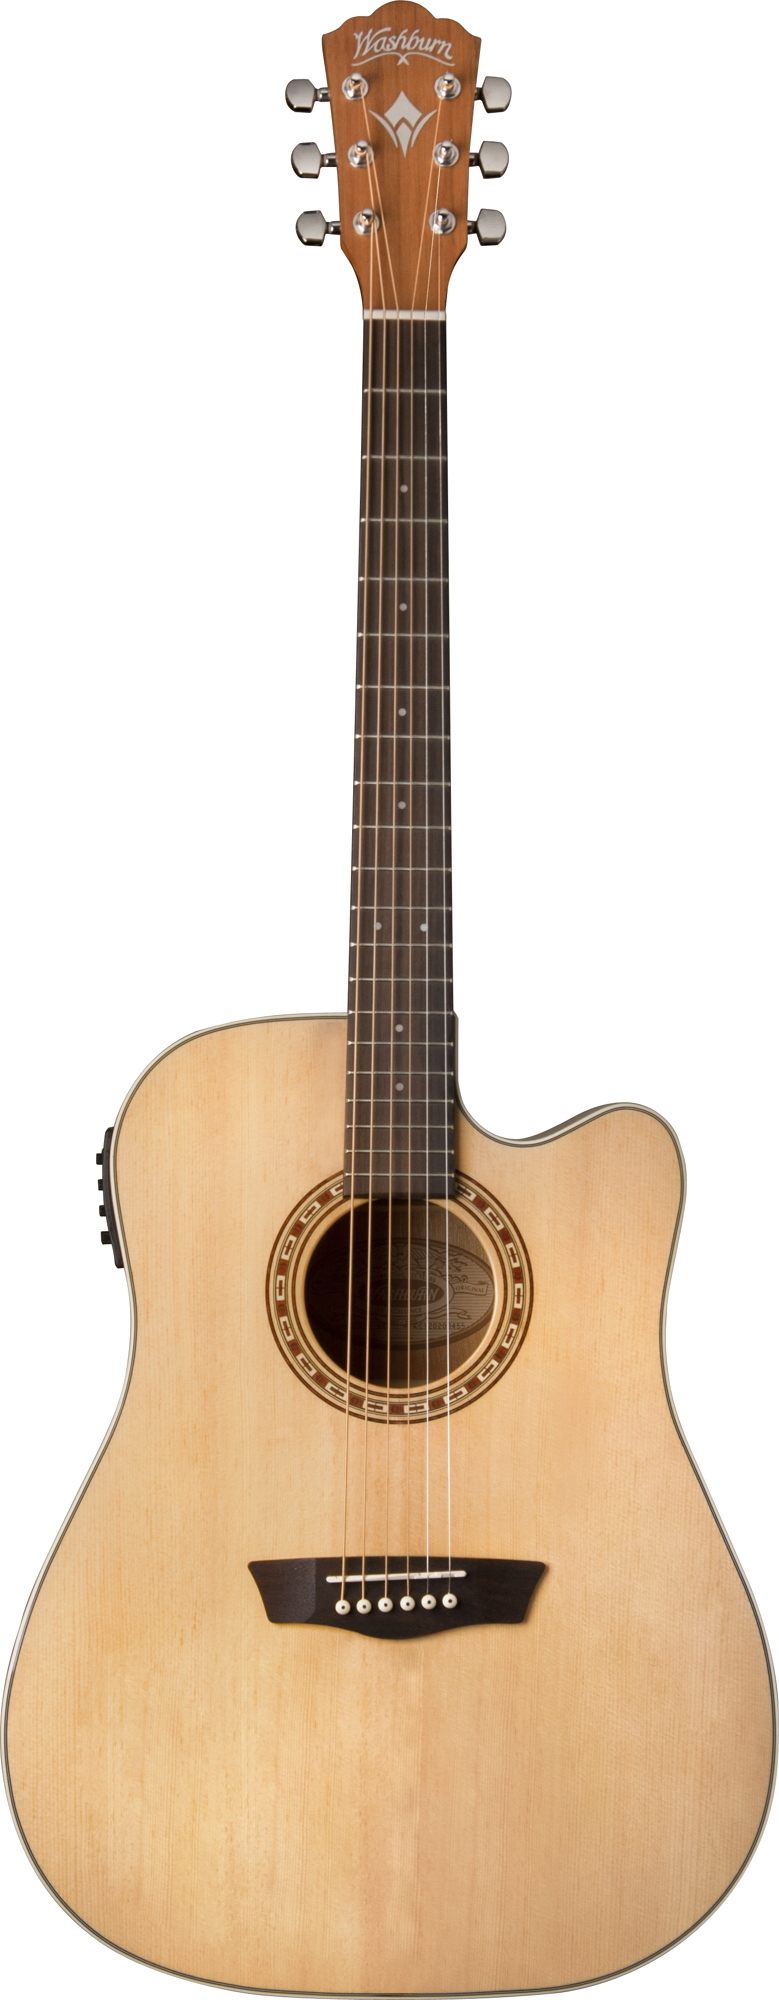 washburn wd7sce acoustic electric guitar with rosewood bridge tobacco burst finish was12 wd7sce. Black Bedroom Furniture Sets. Home Design Ideas